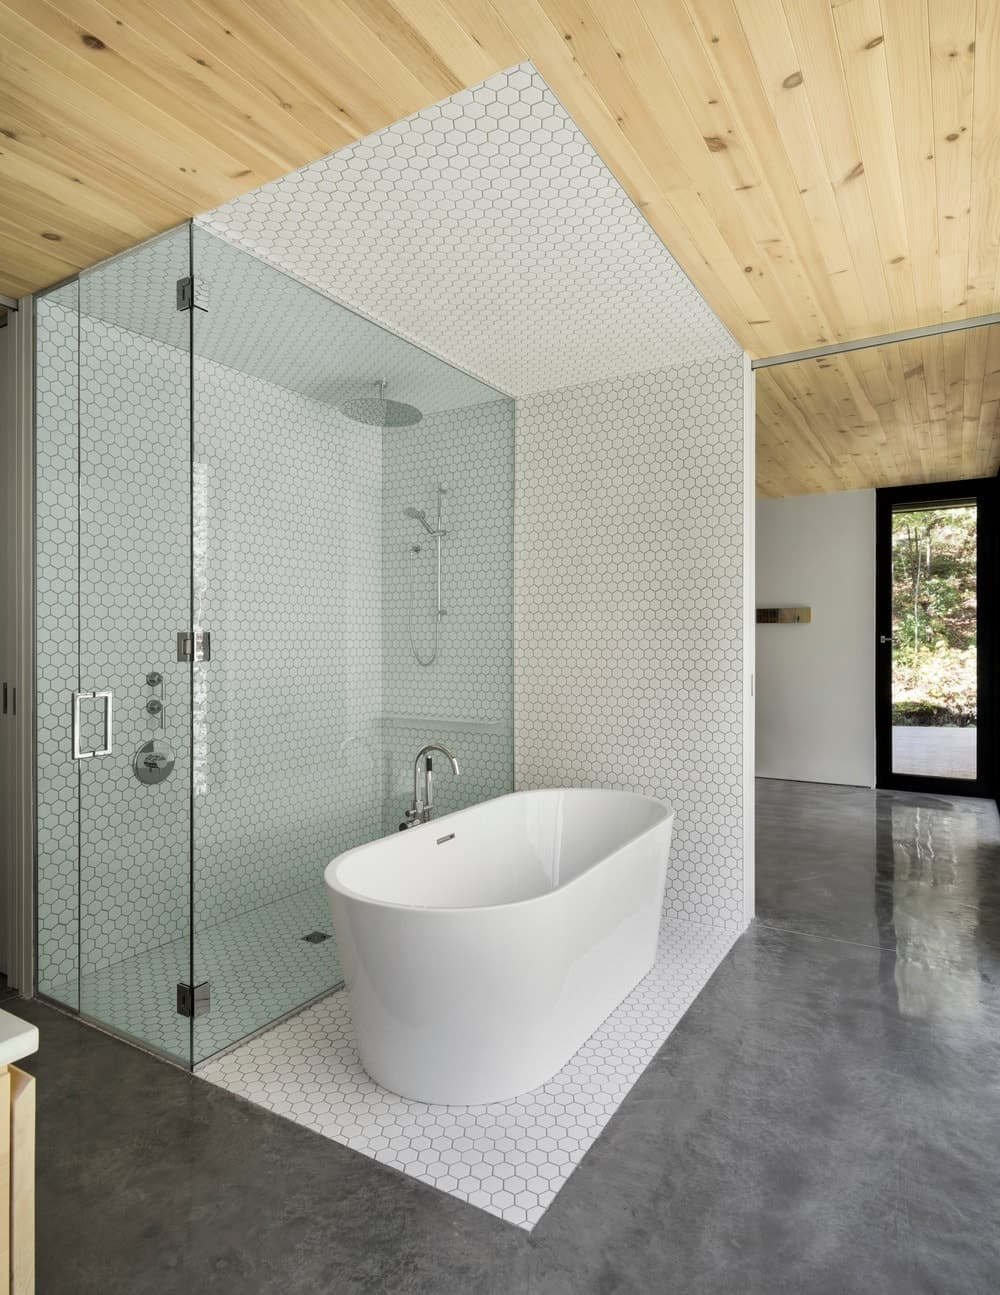 The bathroom boasts a nice walk-in shower and freestanding tub.